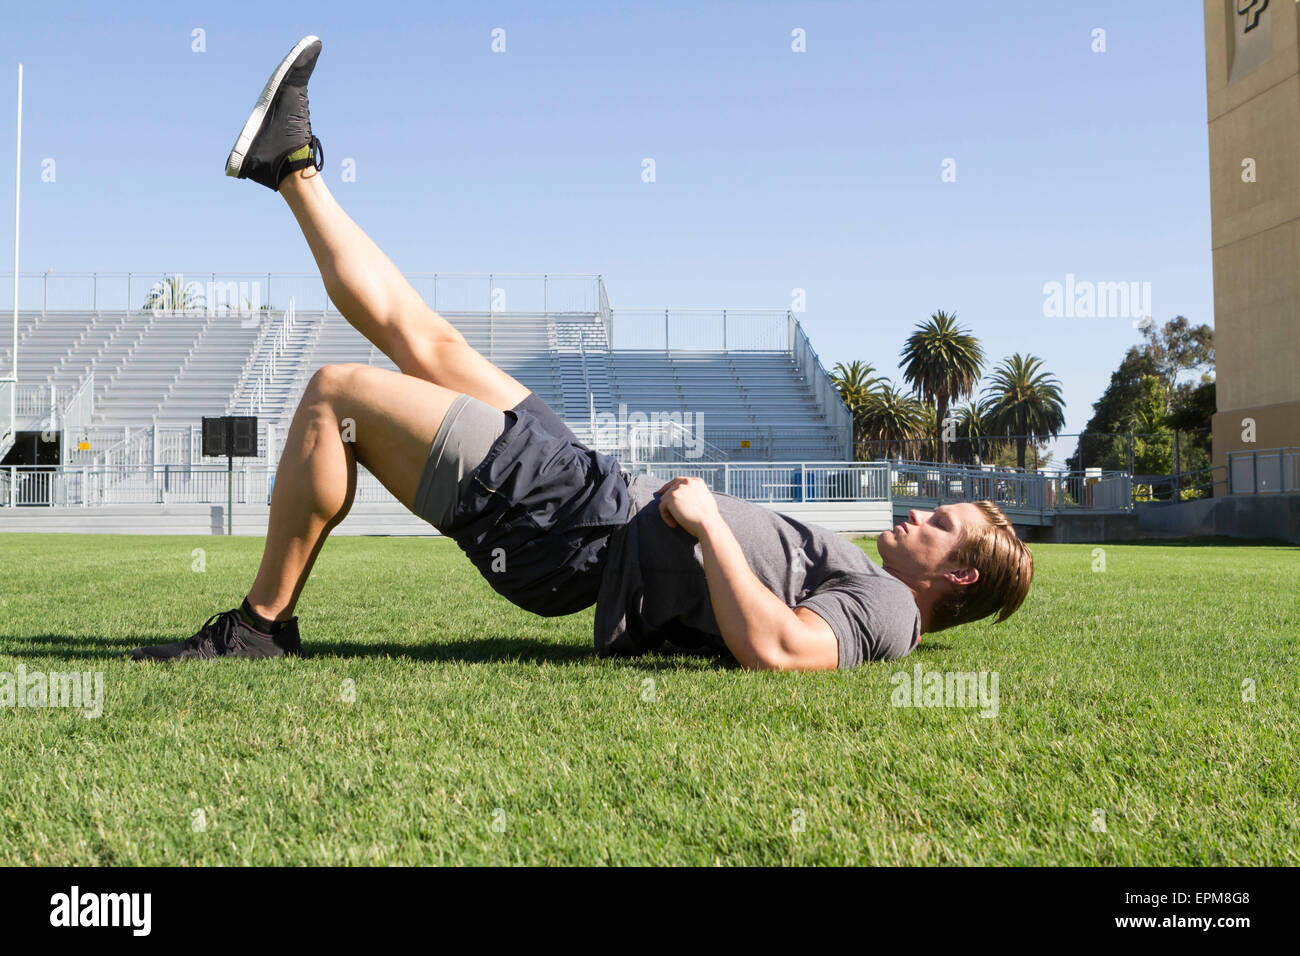 USA, California, San Luis Obispo, young man doing workout on an athletic field - Stock Image